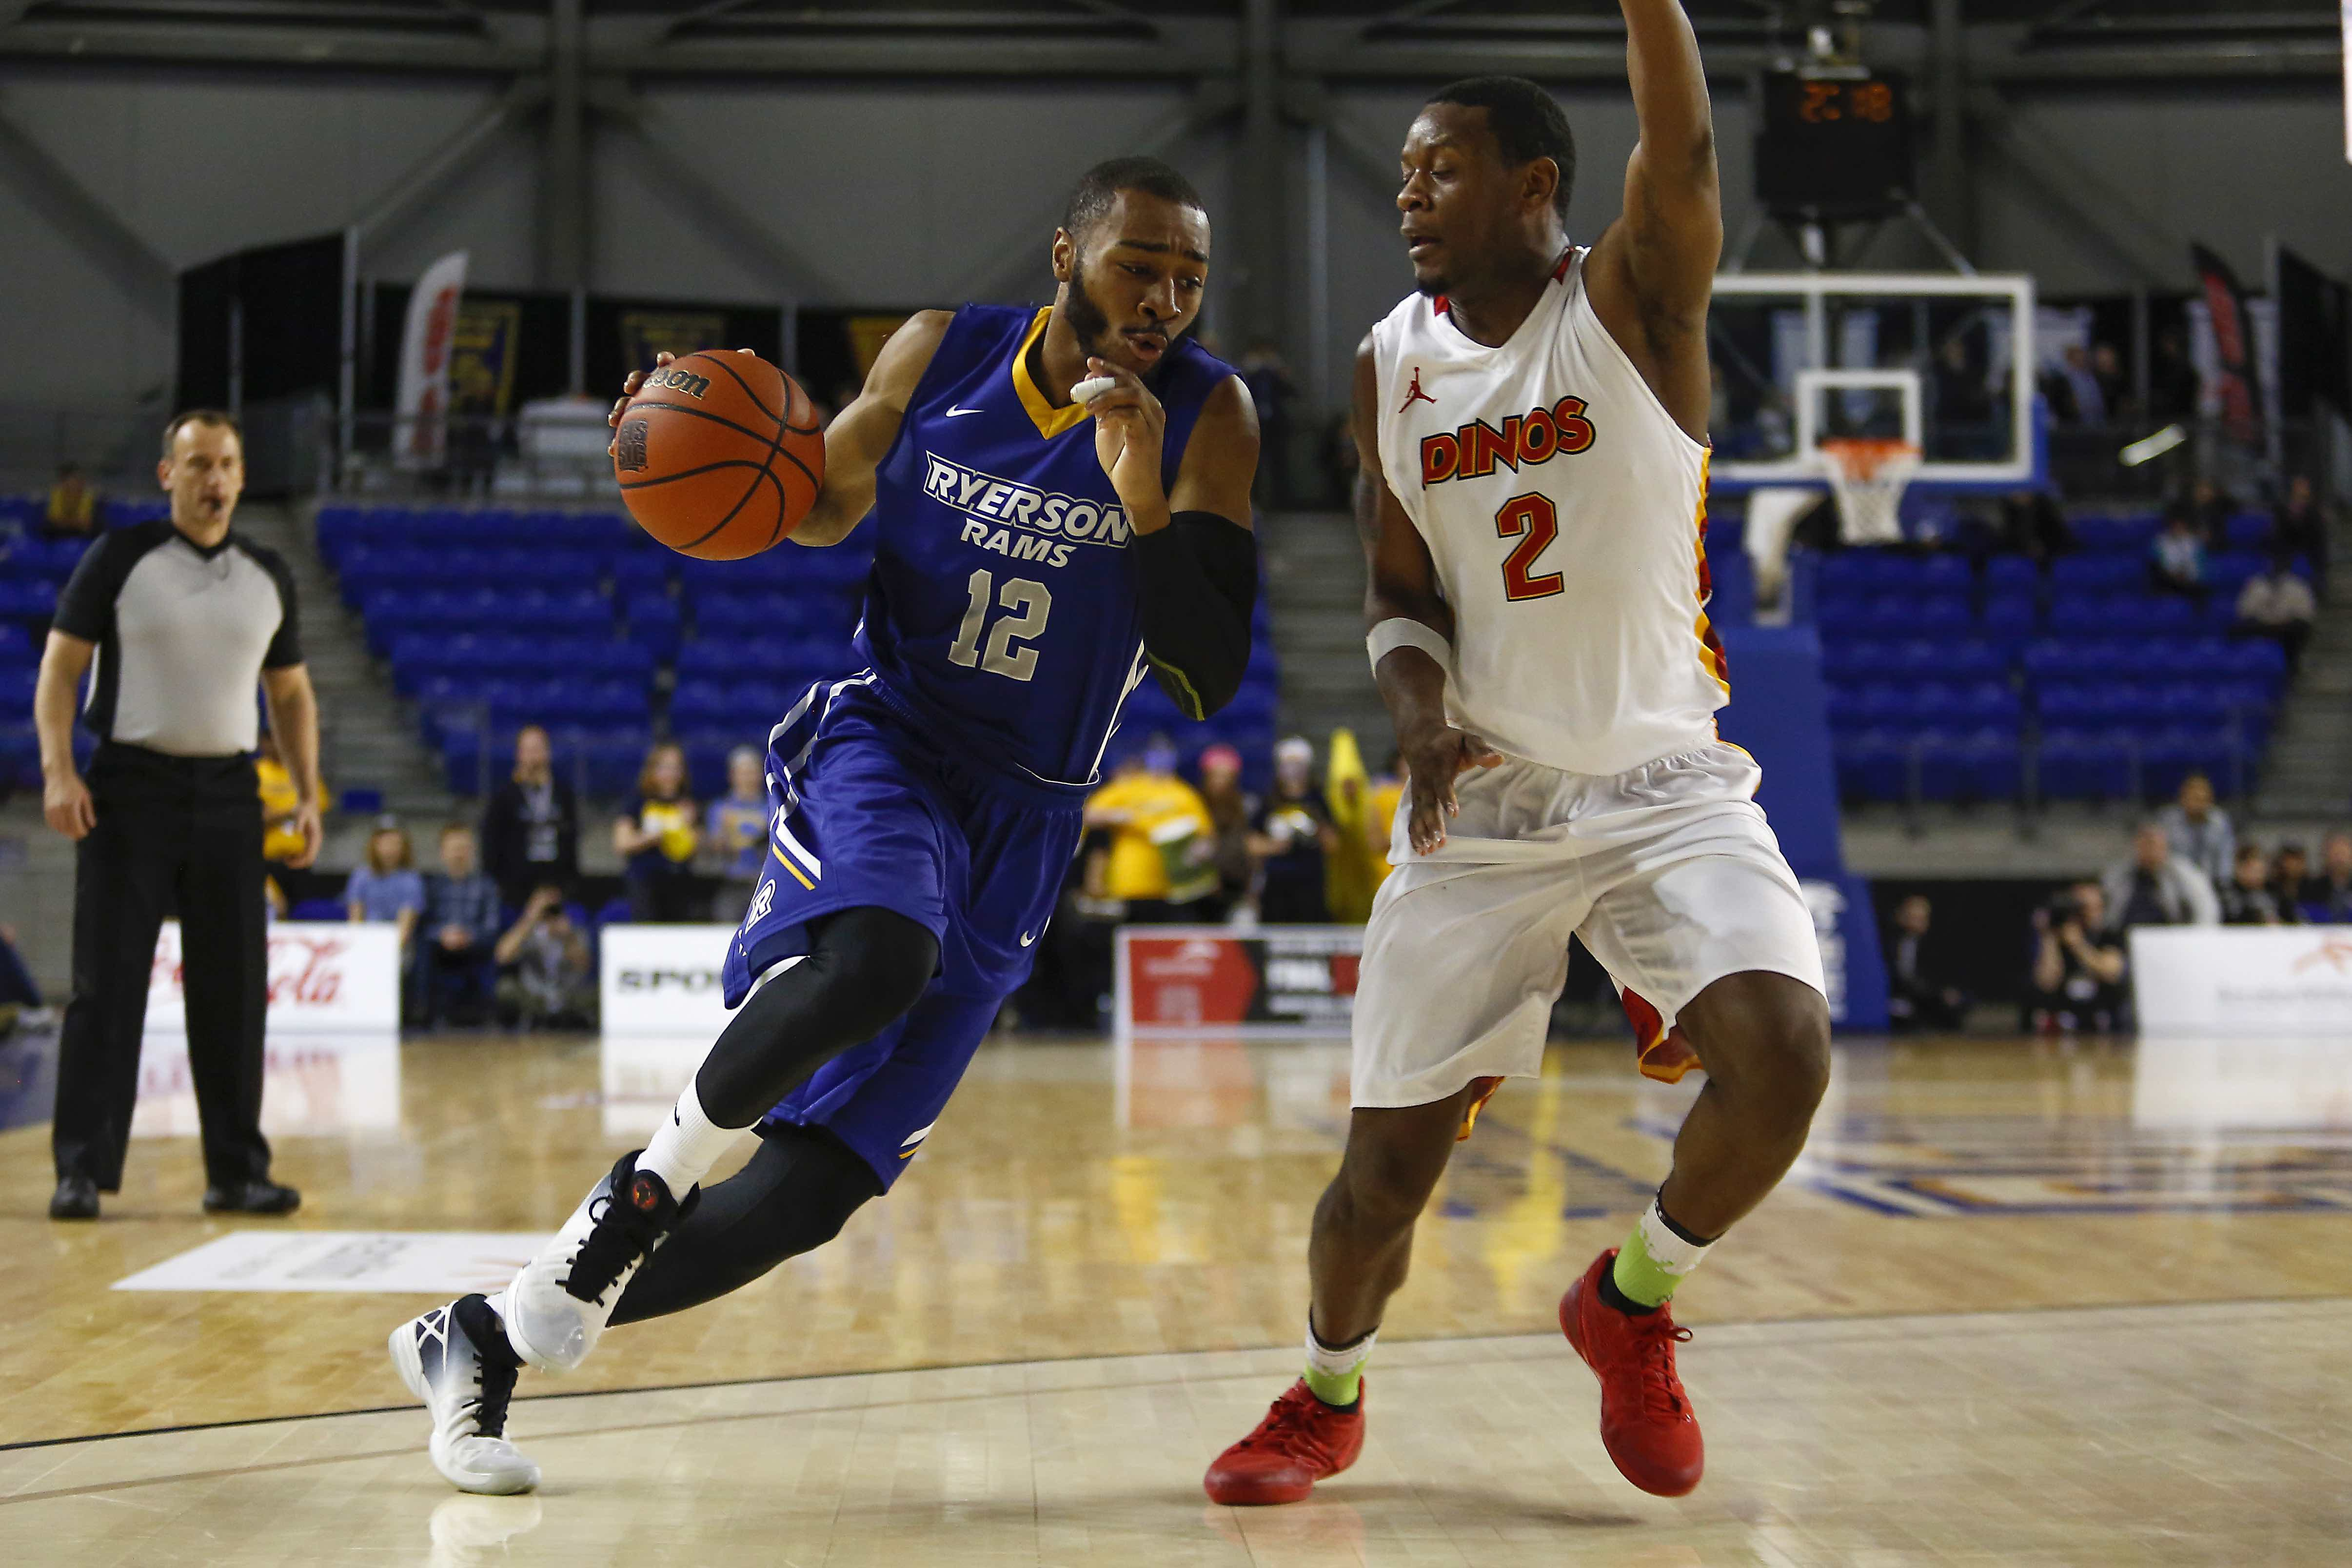 Rams Aaron Best (12) drives on Dinos Thomas Cooper (2) in CIS semifinal. (Courtesy Alex D'Addesse/Rams Athletics)